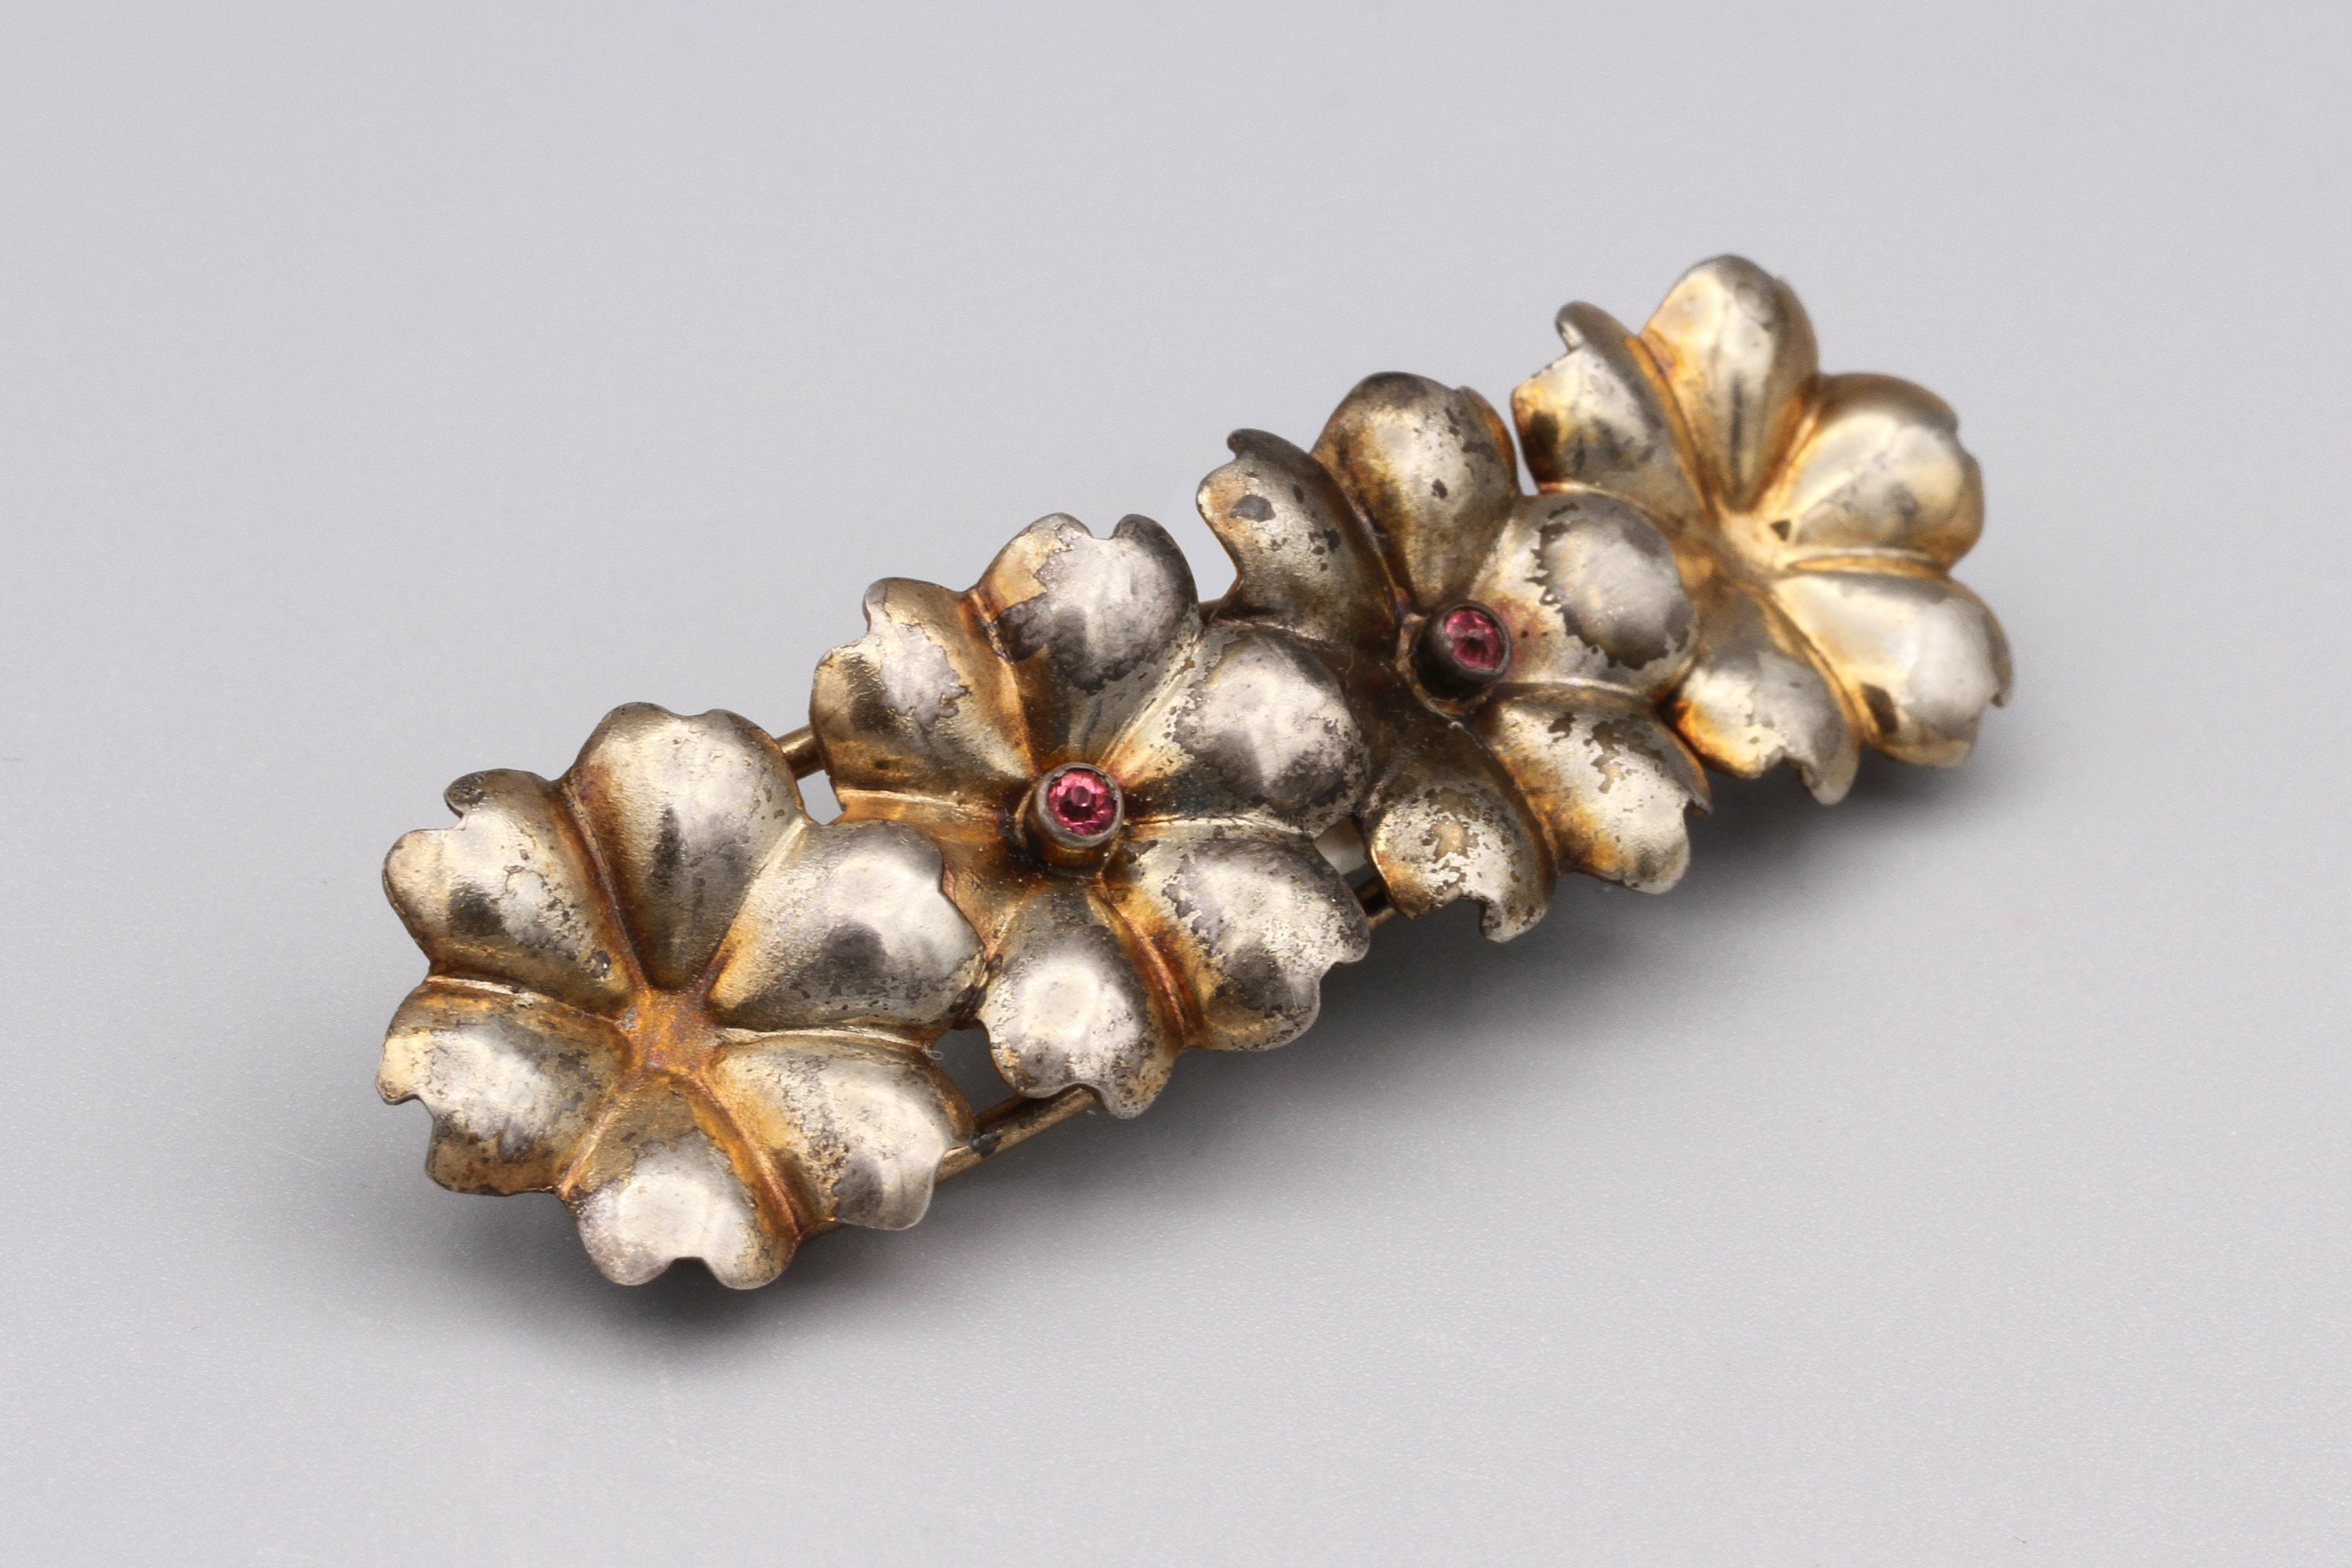 Barrette Sterling Silver Hand Crafted Jewelry